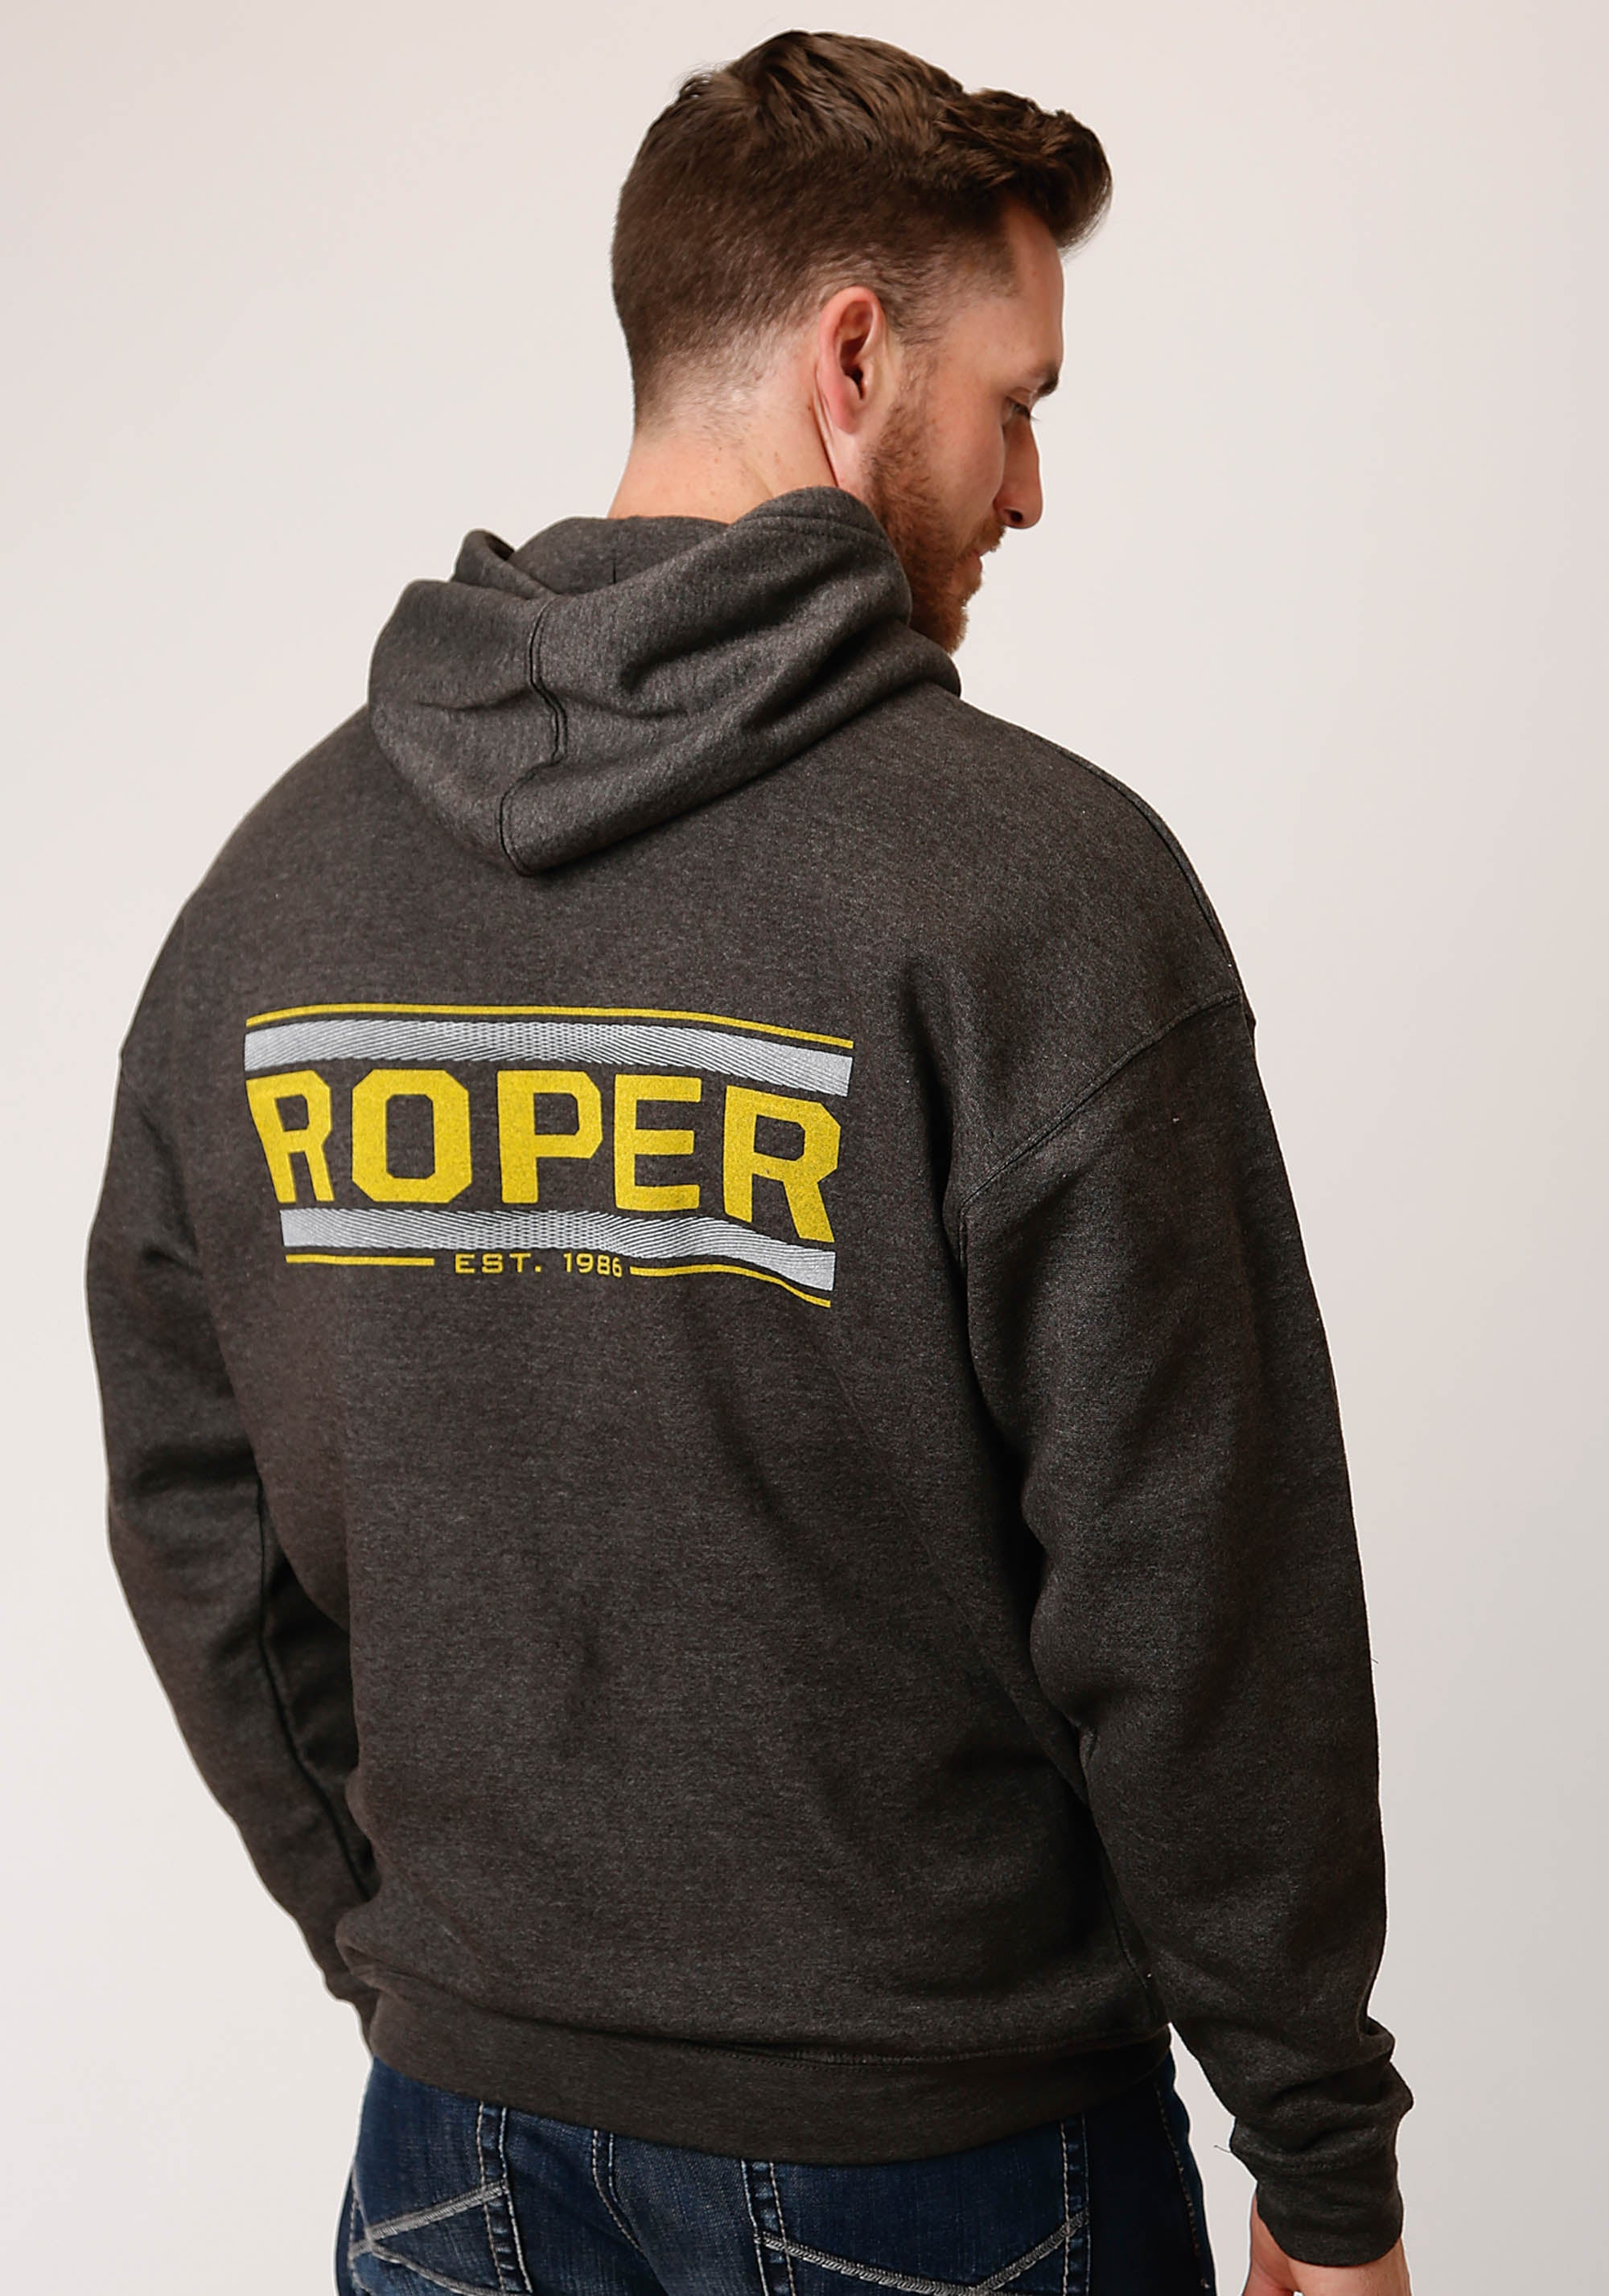 ROPER MENS GREY ROPER LEFT CHEST FULL BACK SCREEN PRIN ROPER MEN'S SWEATSHIRTS JACKET